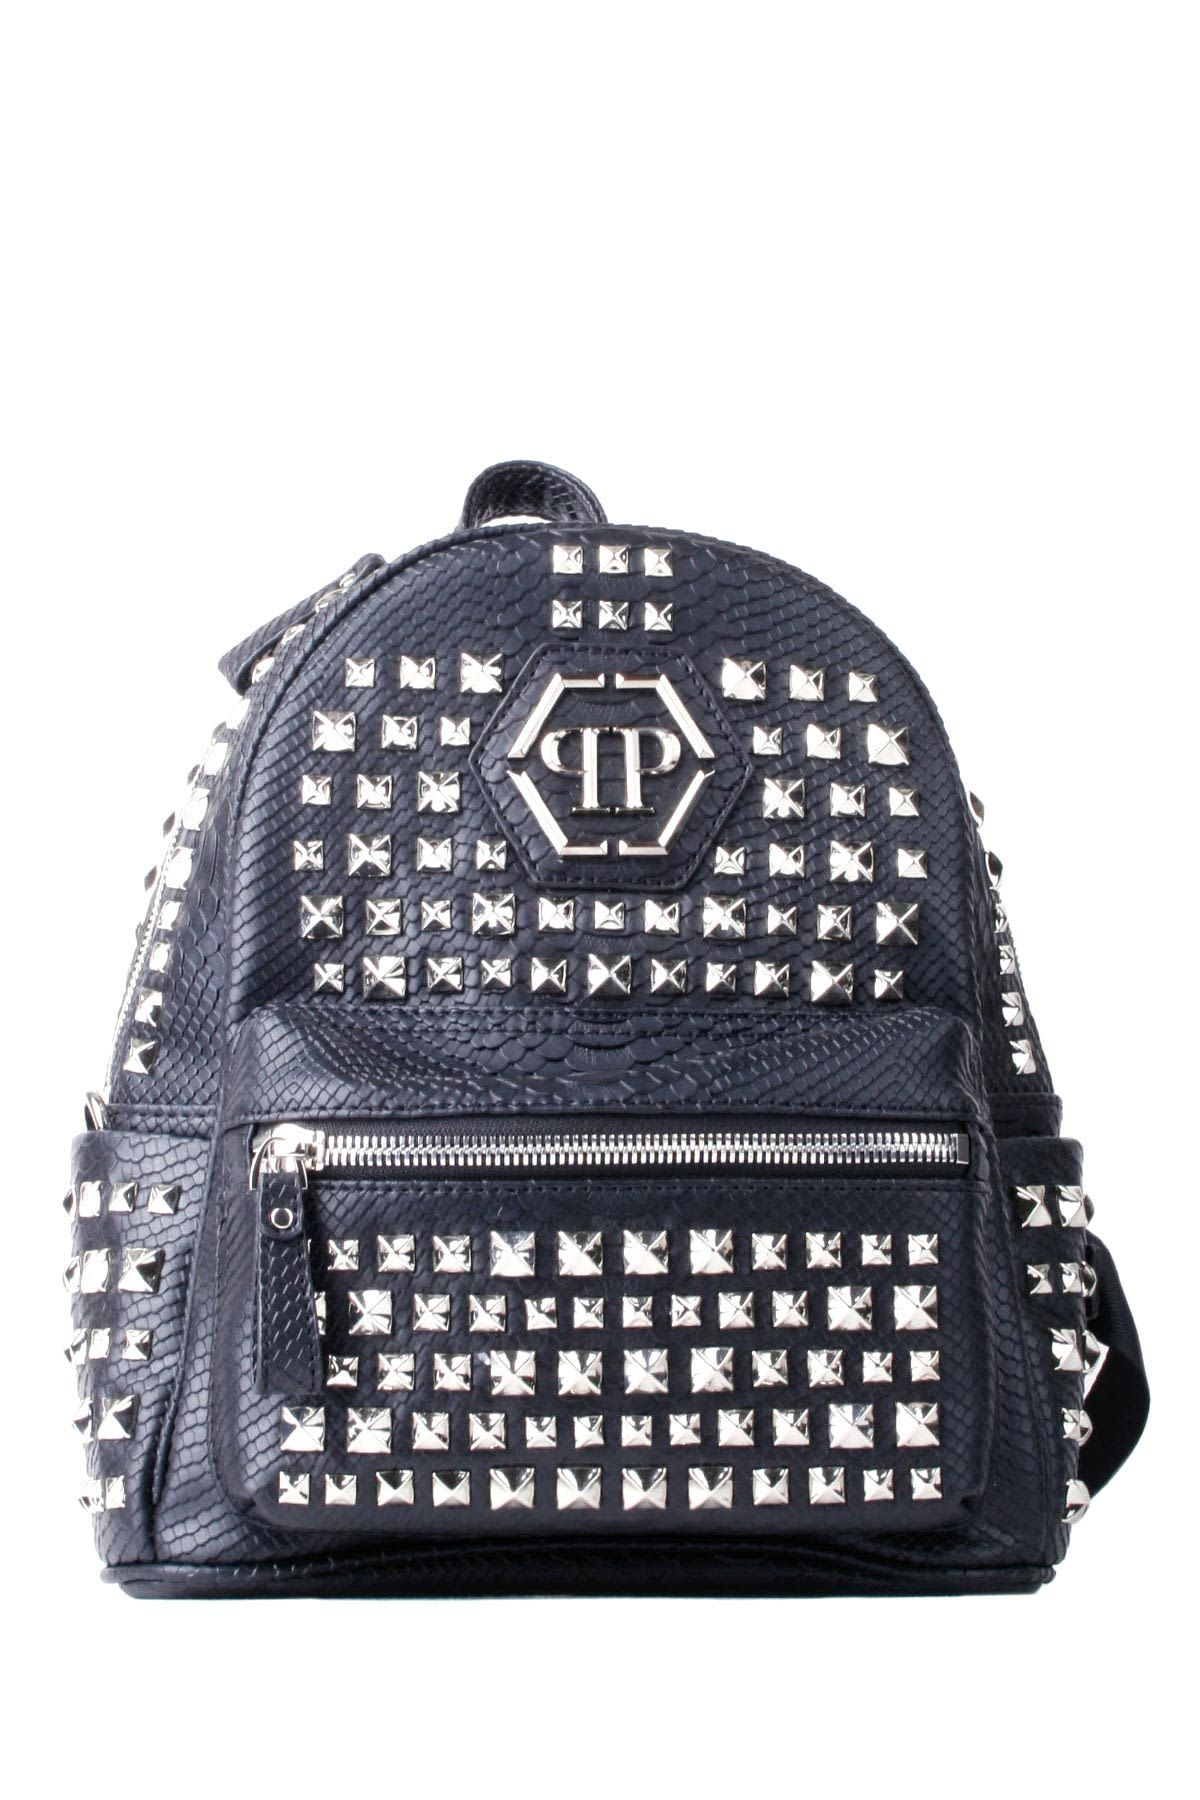 4562d58418be70 PHILIPP PLEIN BLACK FAKE LEATHER KEN STUDDED SMALL BACKPACK. #philippplein  #bags #leather #backpacks #